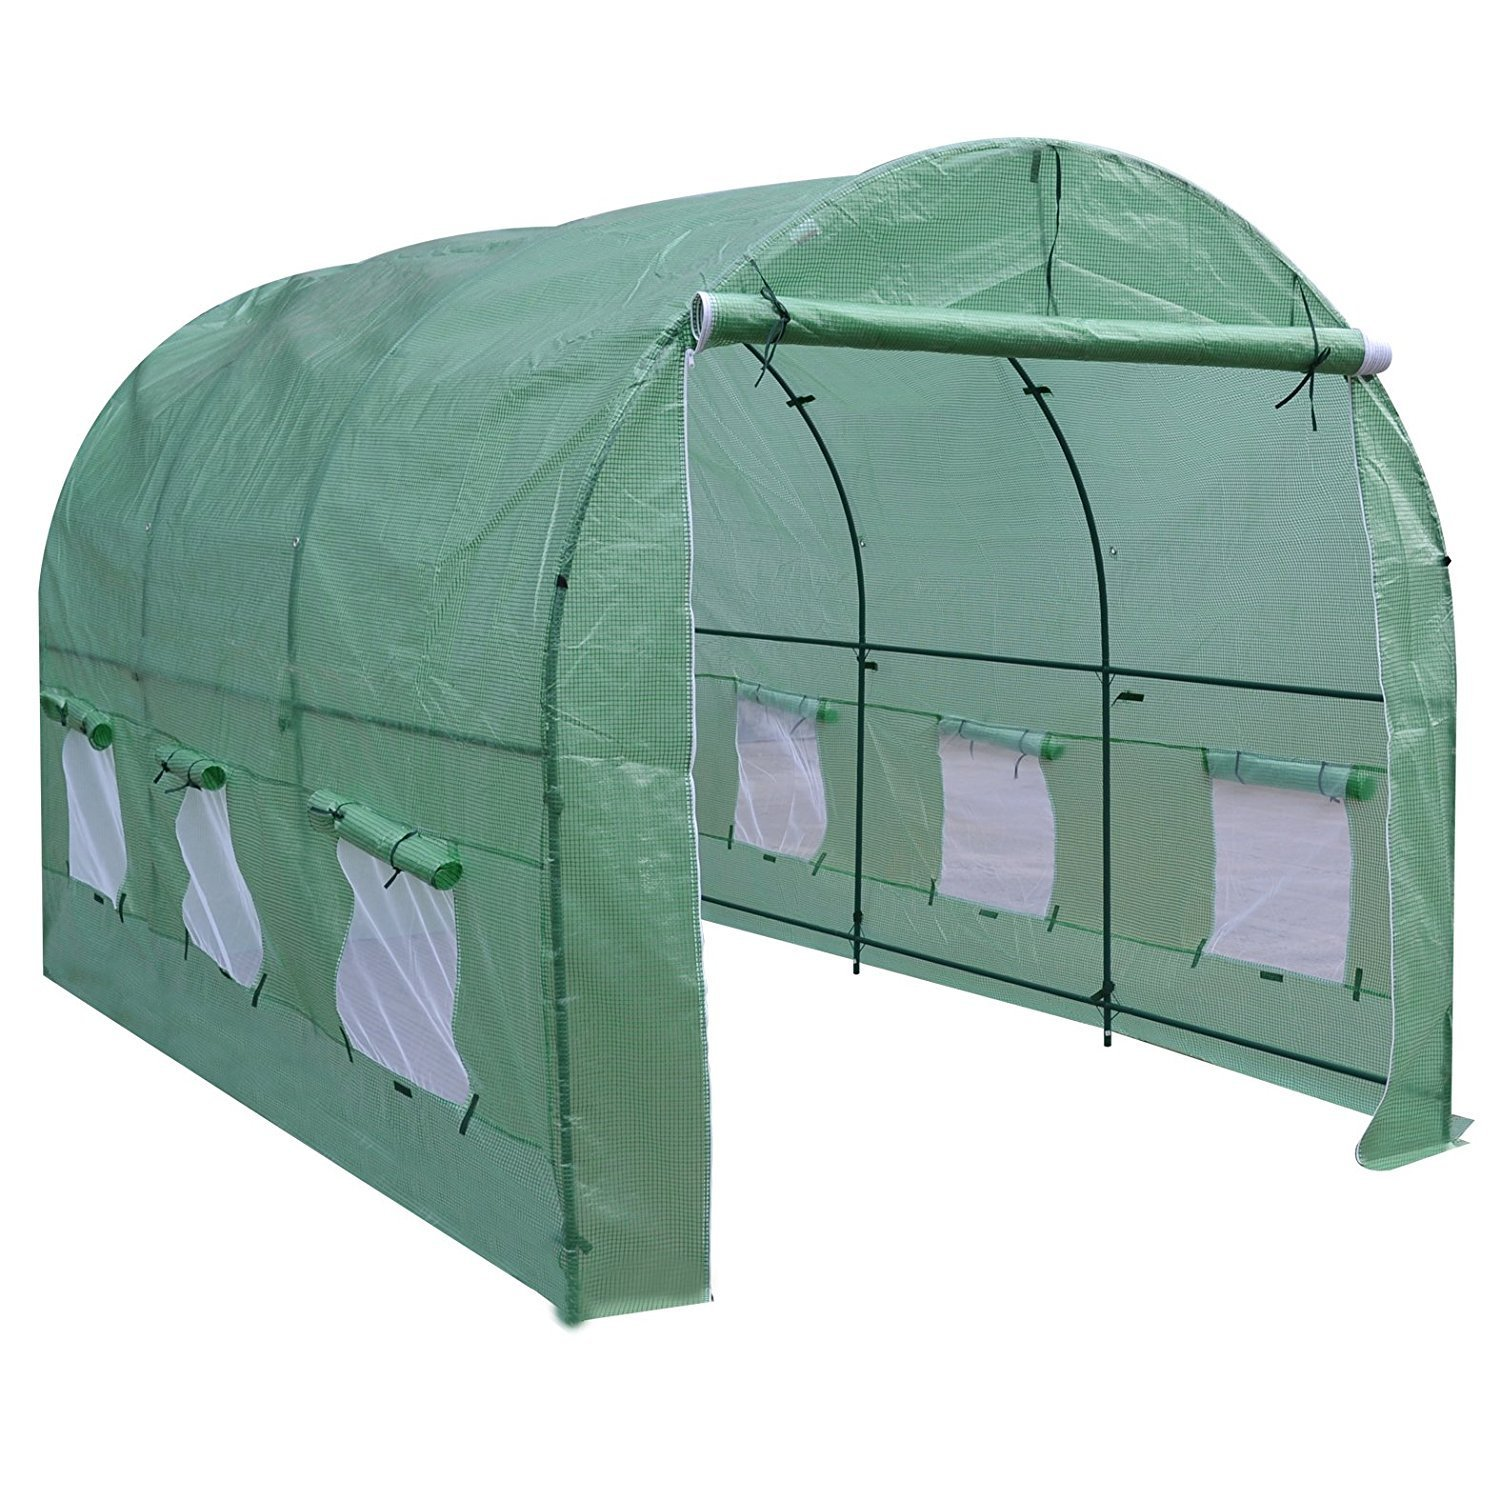 BenefitUSA GH050 Larger Walk Plant Outdoor Gardening Greenhouse, 12'x7'x7' , Green by BenefitUSA